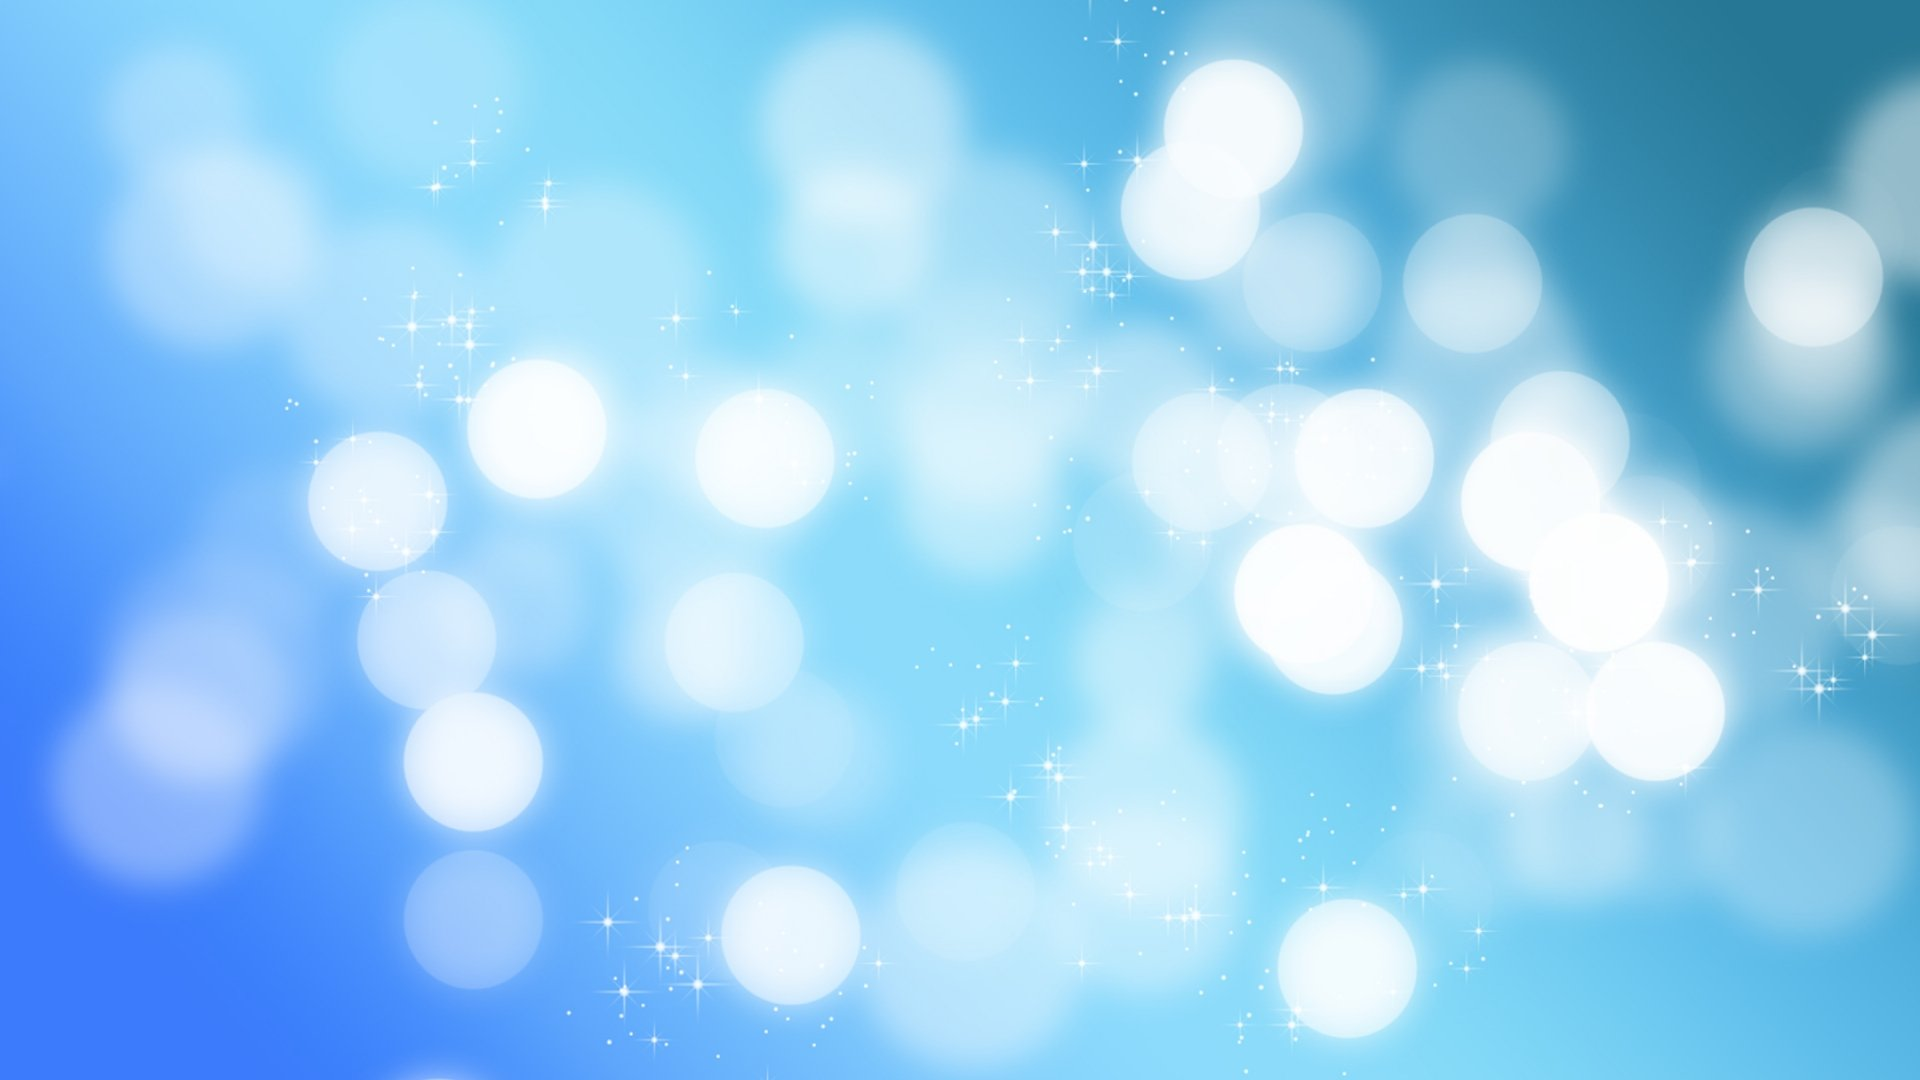 Wallpaperwiki Sparkle Blue Light Hd 1080 Wallpaper PIC WPC009031